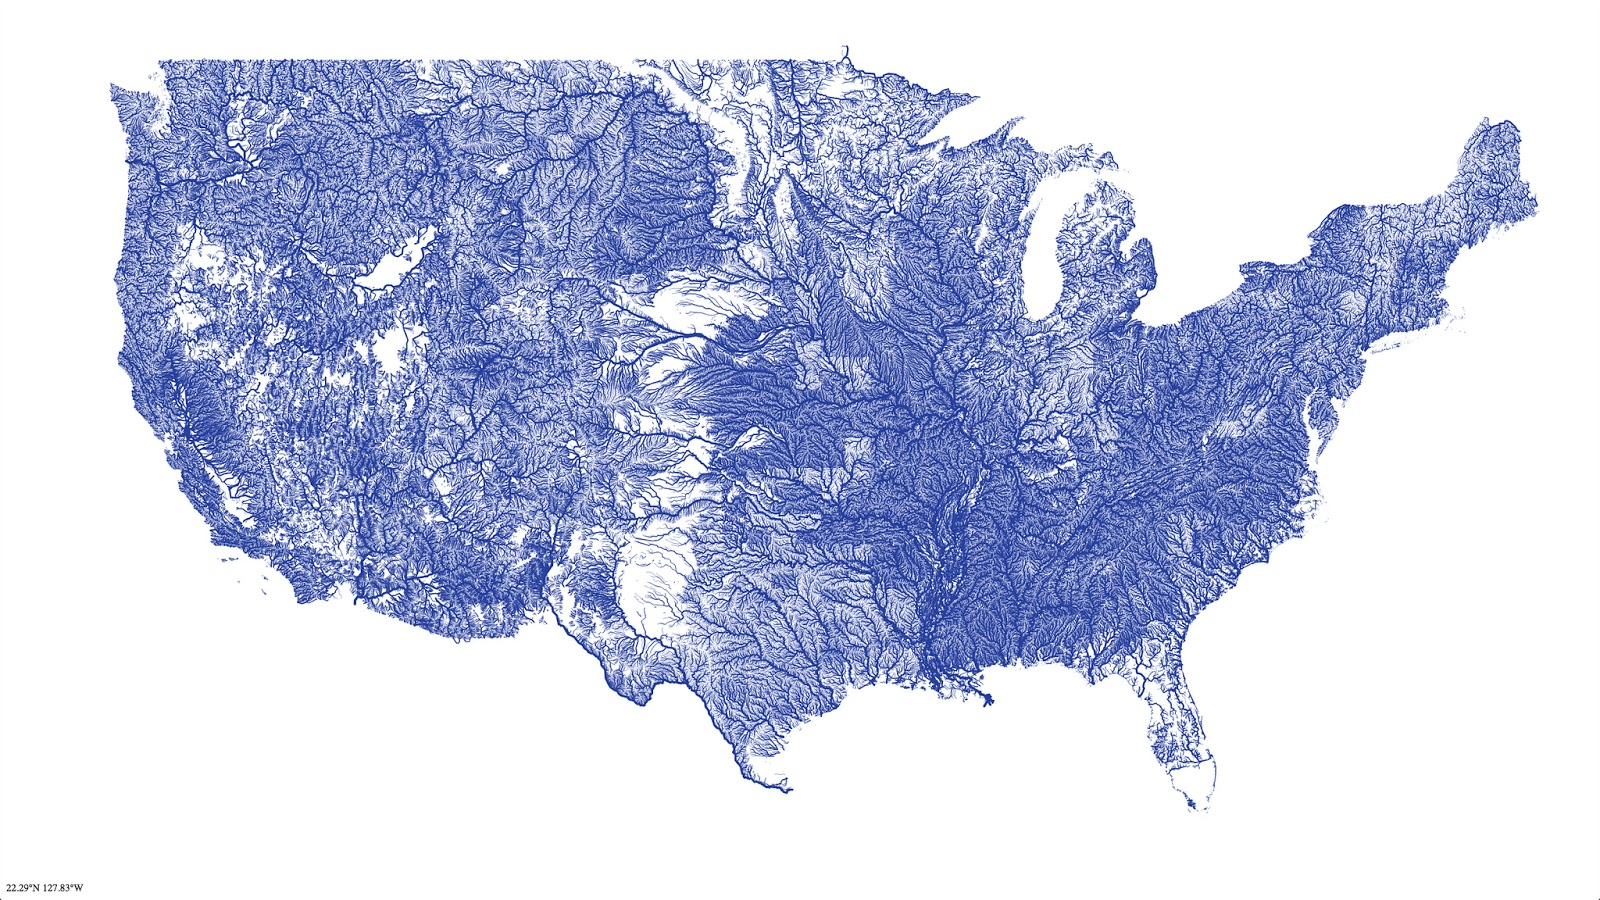 All the rivers in the U.S.